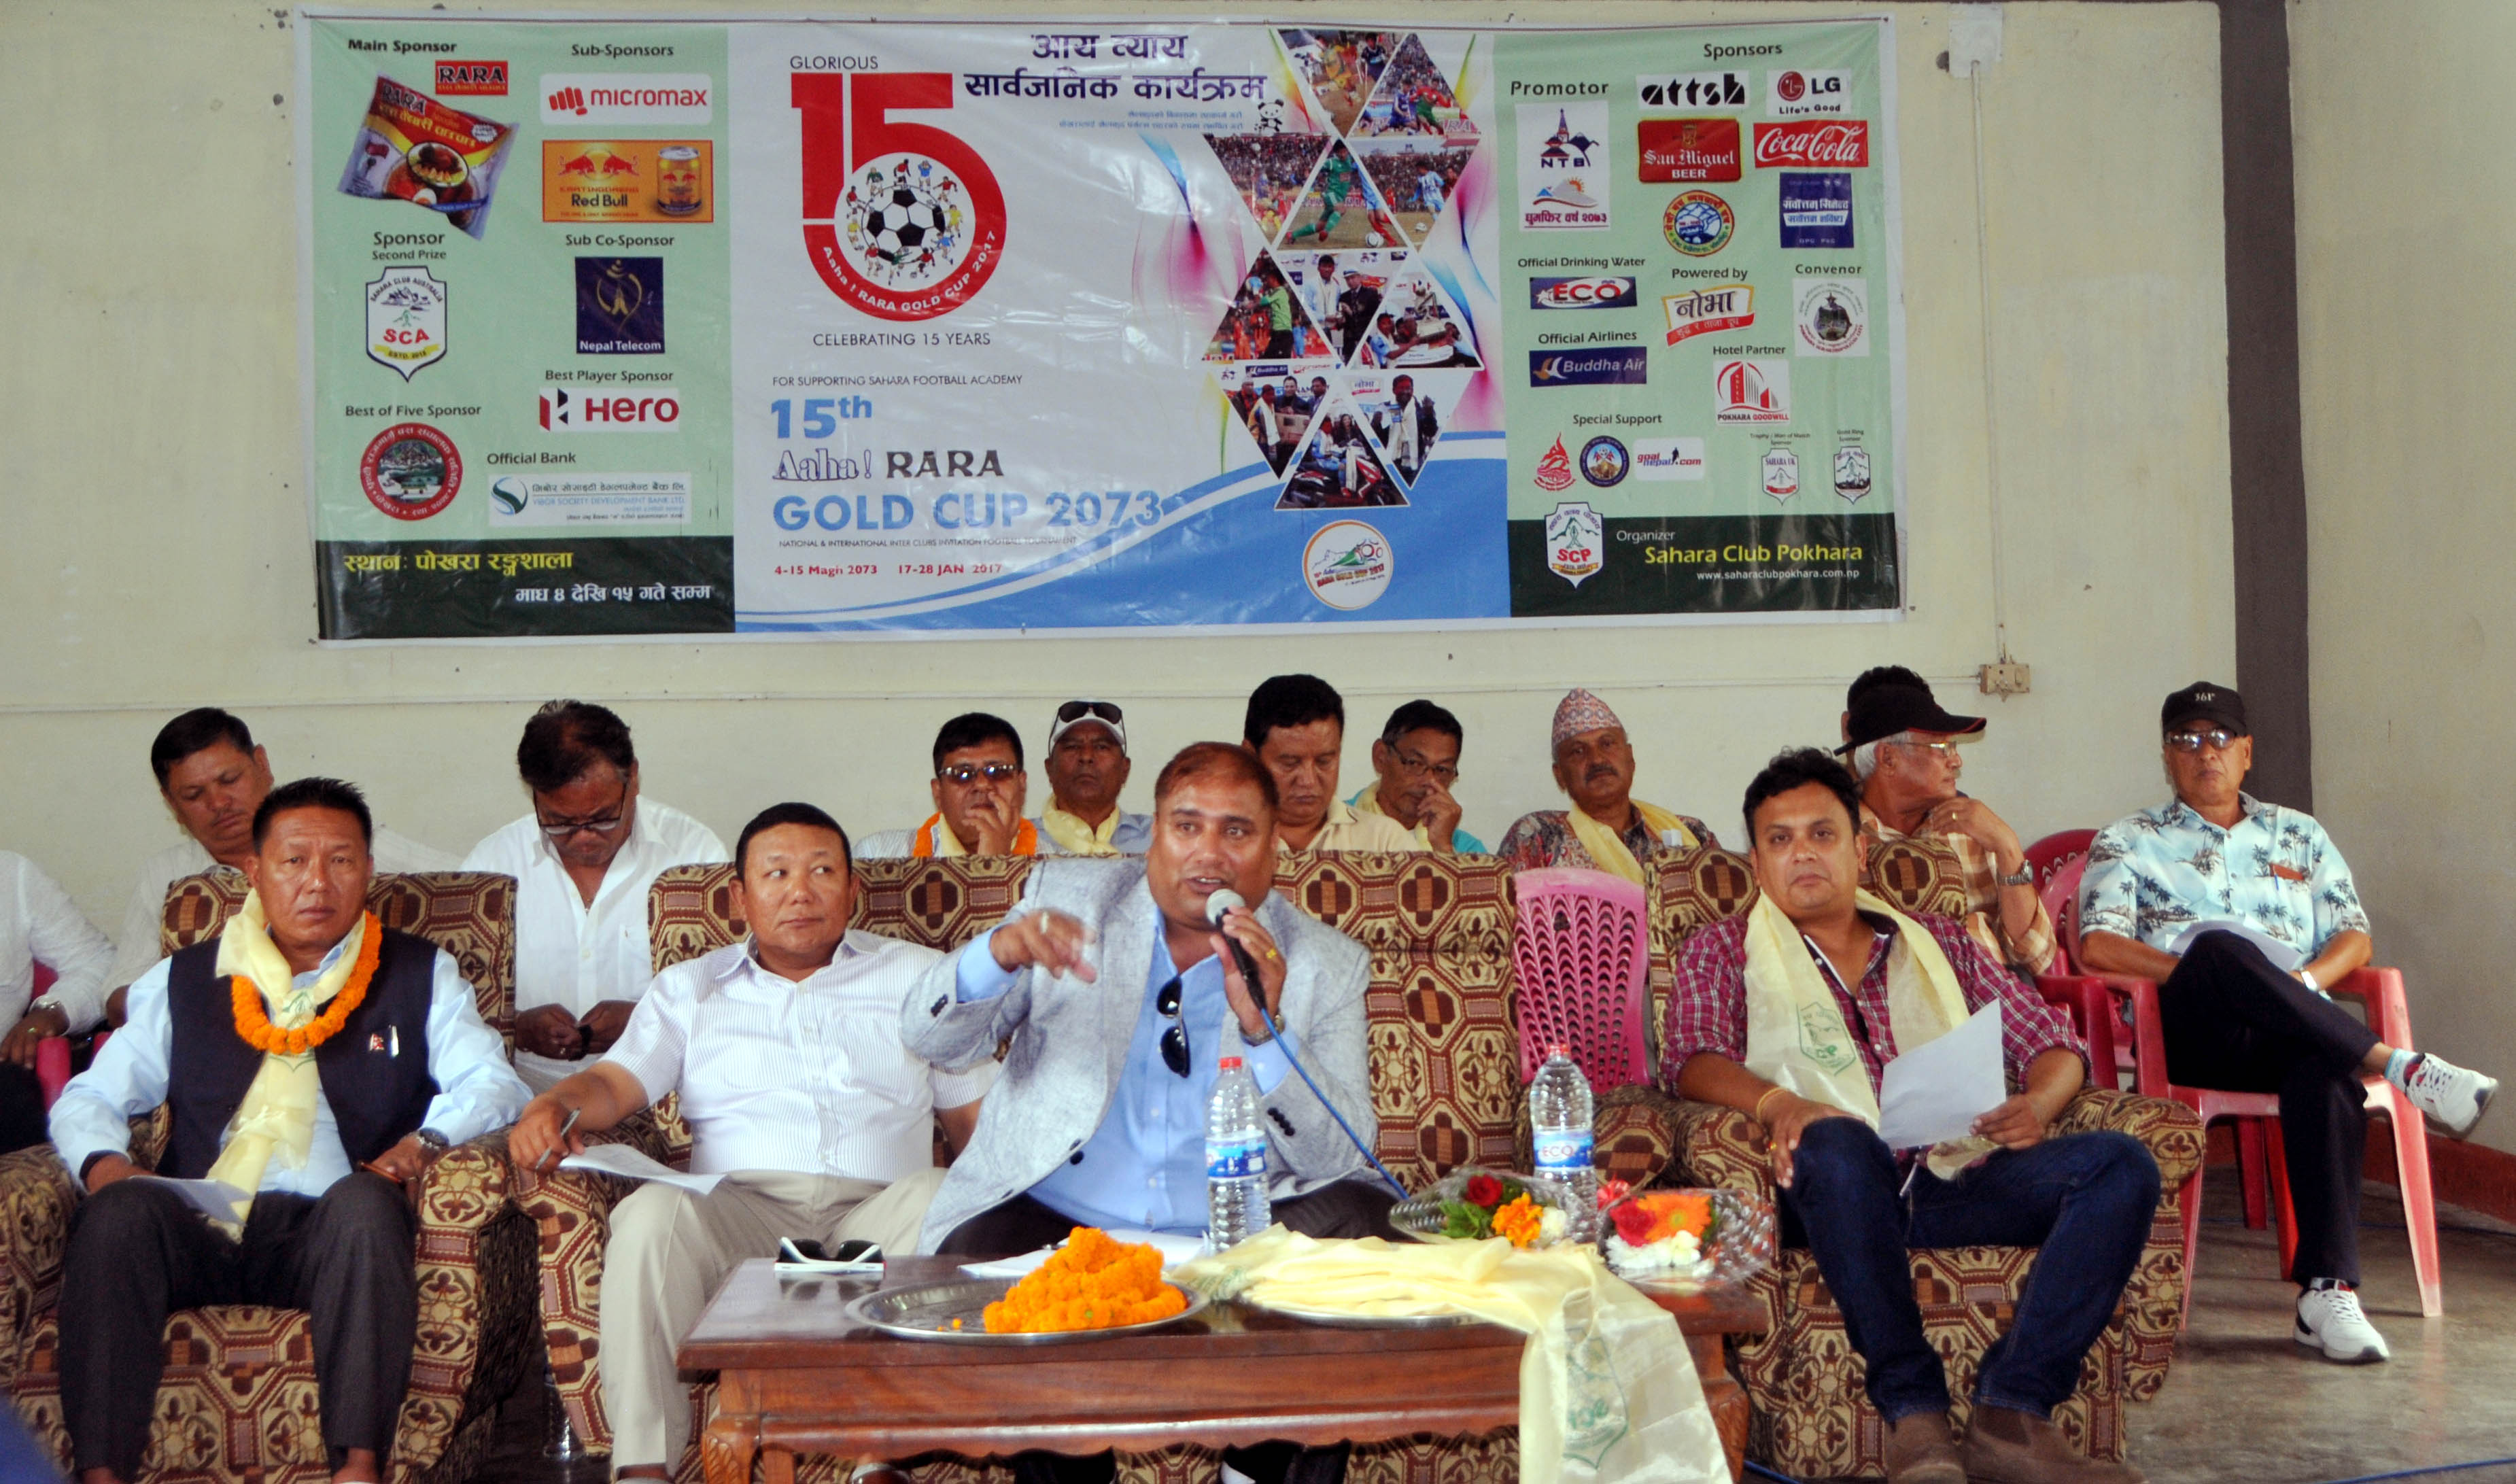 AahaRara Gold Cup in Profit